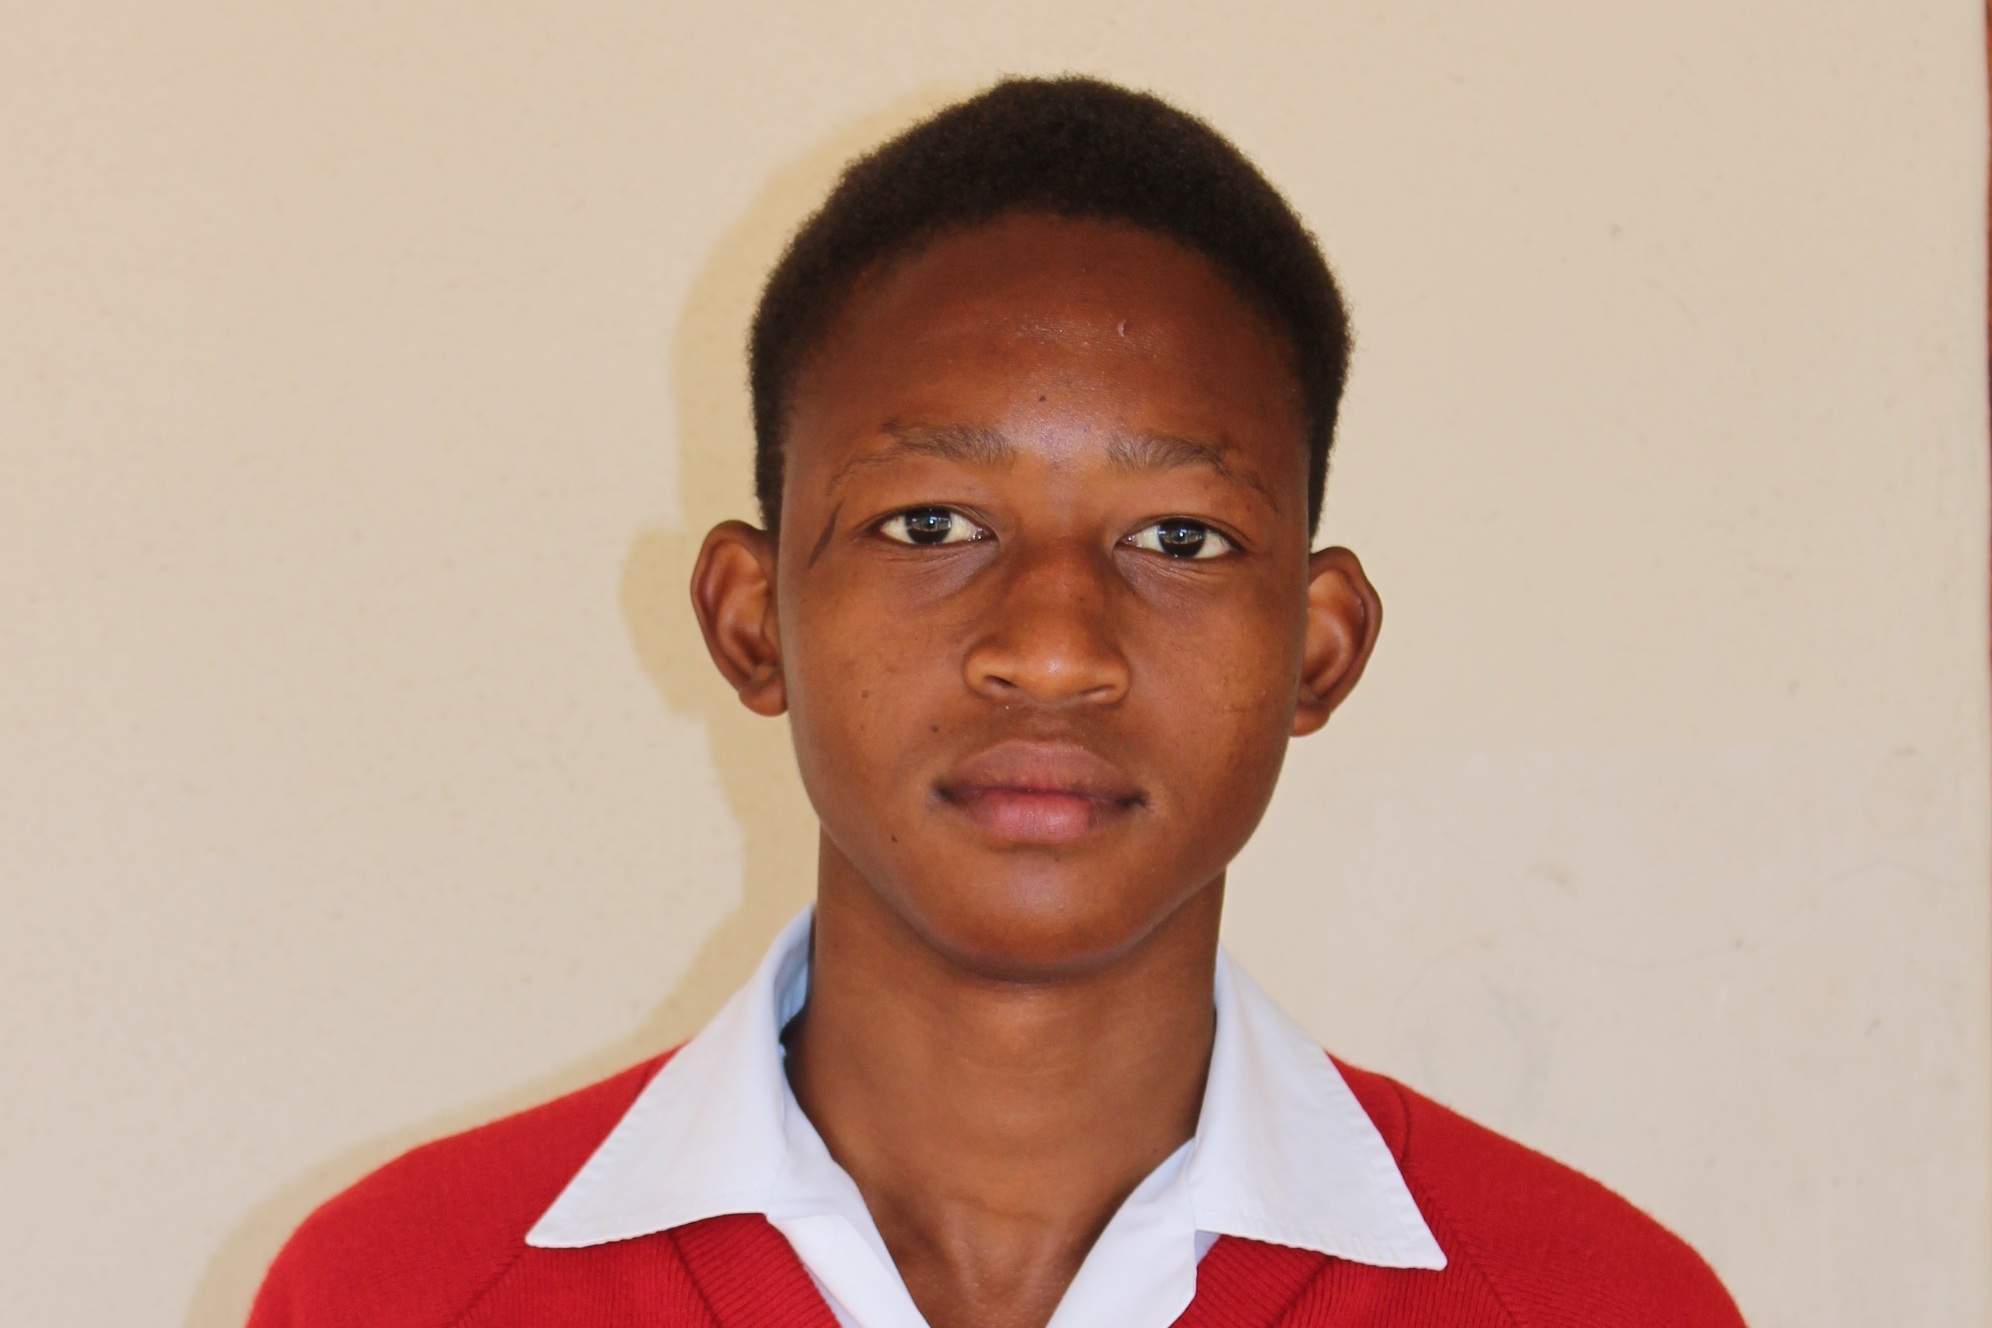 Joseph - Joseph graduated from Uplands College in 2017 and is currently studying electrical engineering at Tshwane University of Technology (Pretoria). He will begin his engineering practical course work in 2020.